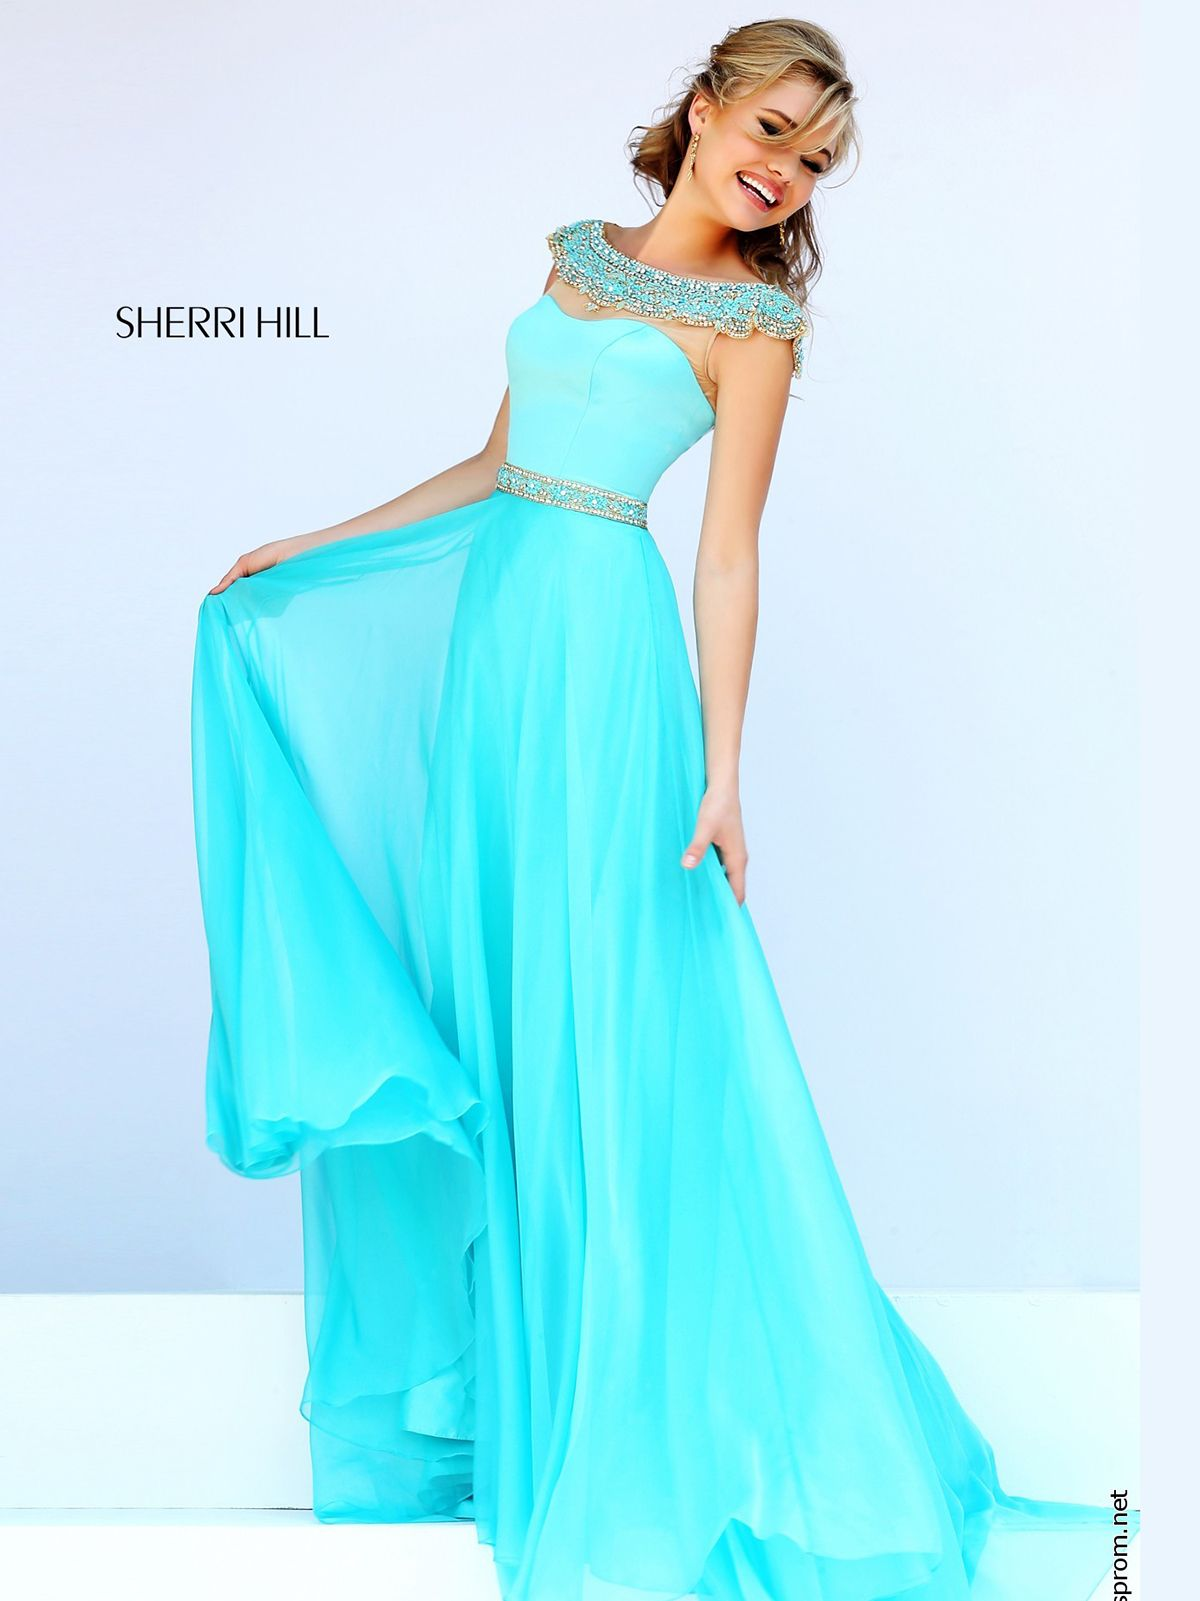 Show off your style in the Sherri Hill prom dress 32220! This elegant prom  gown